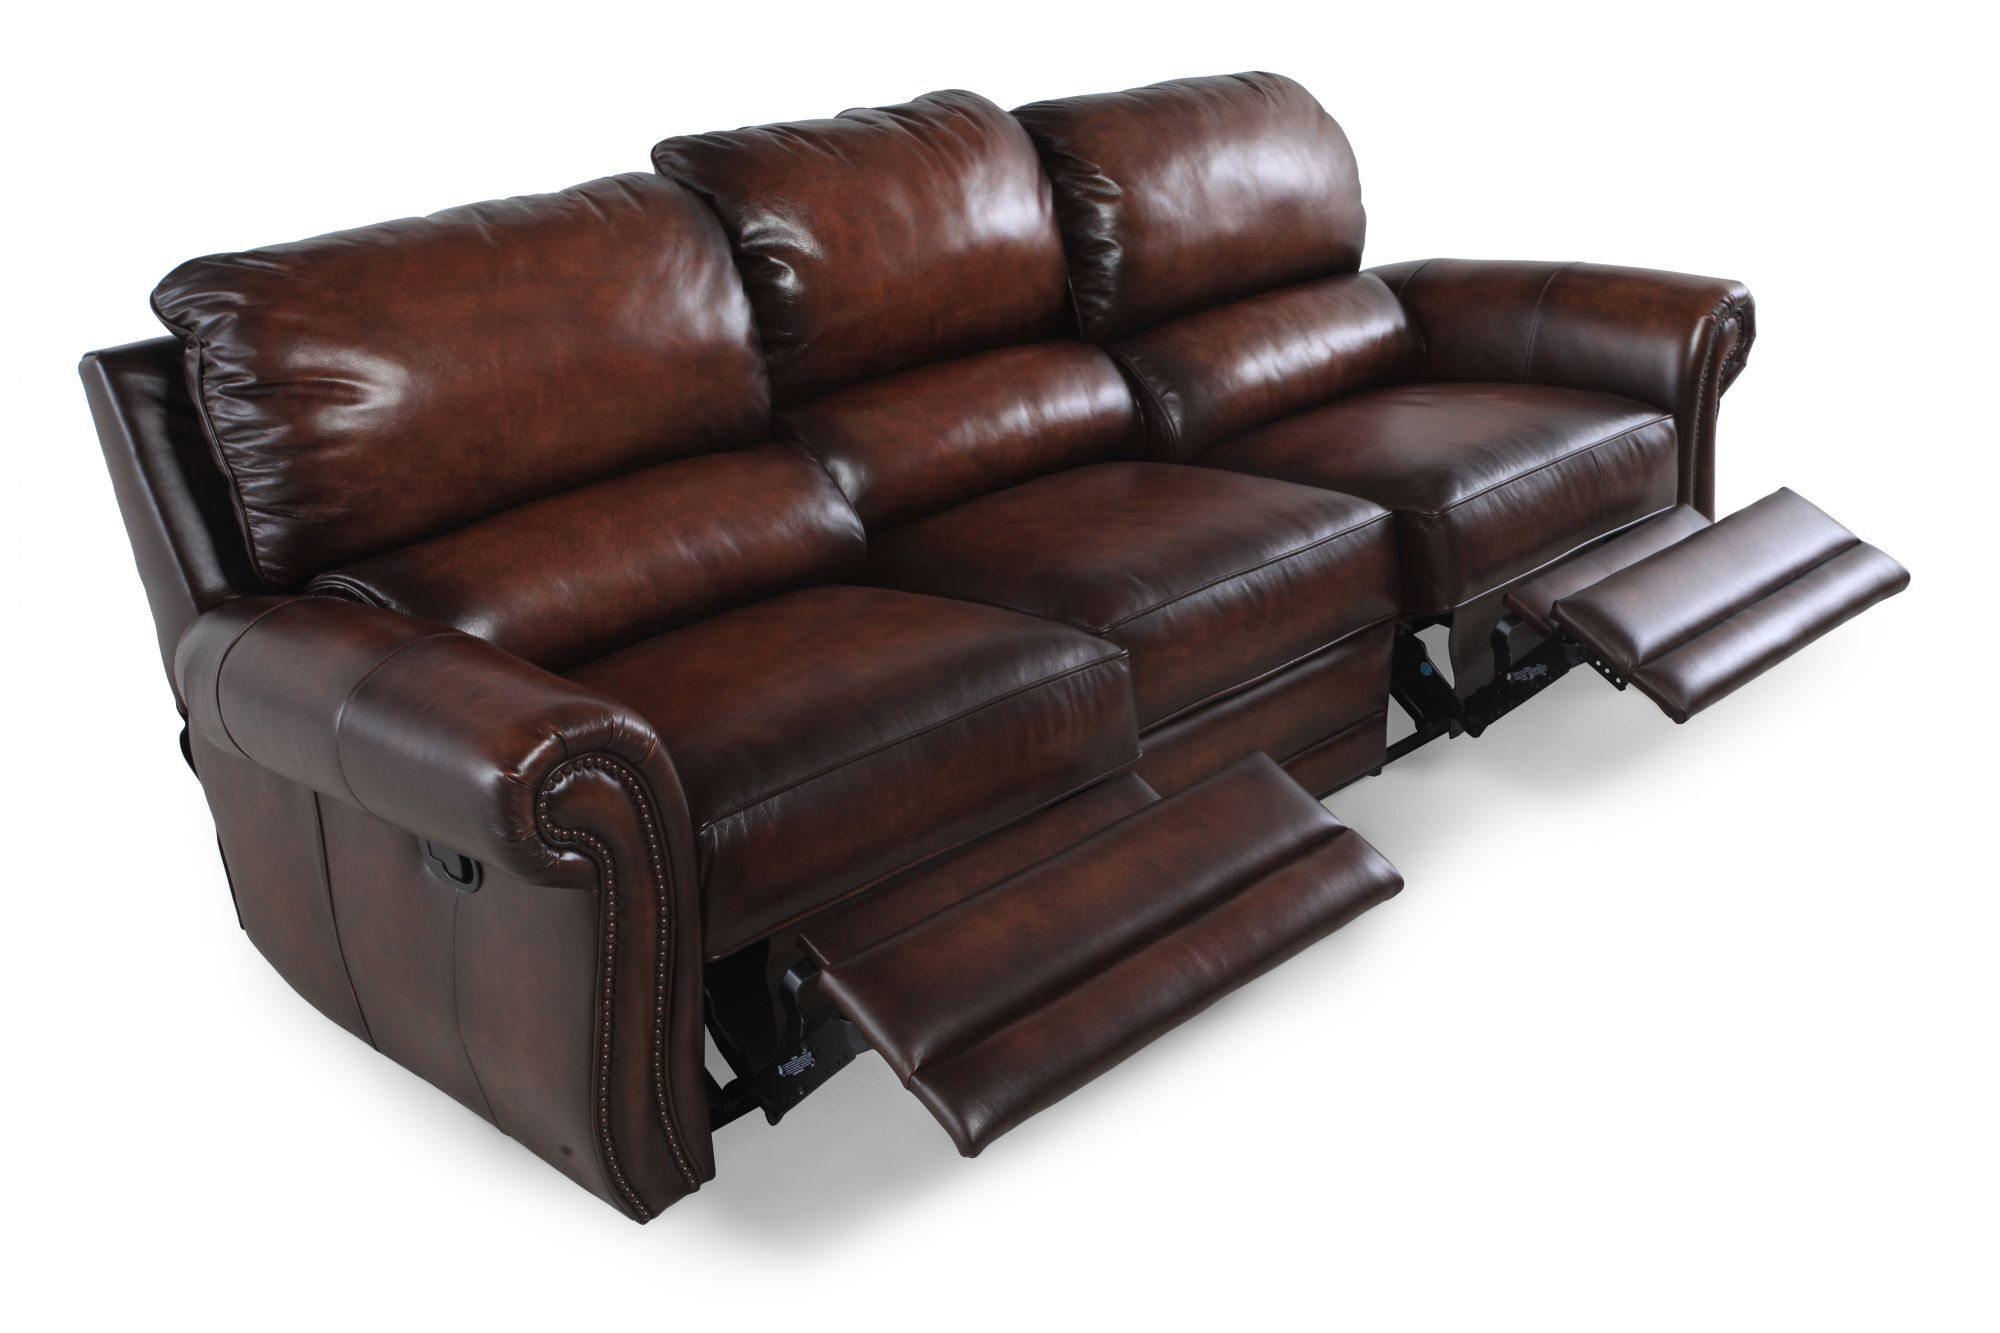 Bernhardt Reese Double Reclining ...  sc 1 st  Mathis Brothers & Bernhardt Reese Double Reclining Leather Sofa | Mathis Brothers ... islam-shia.org